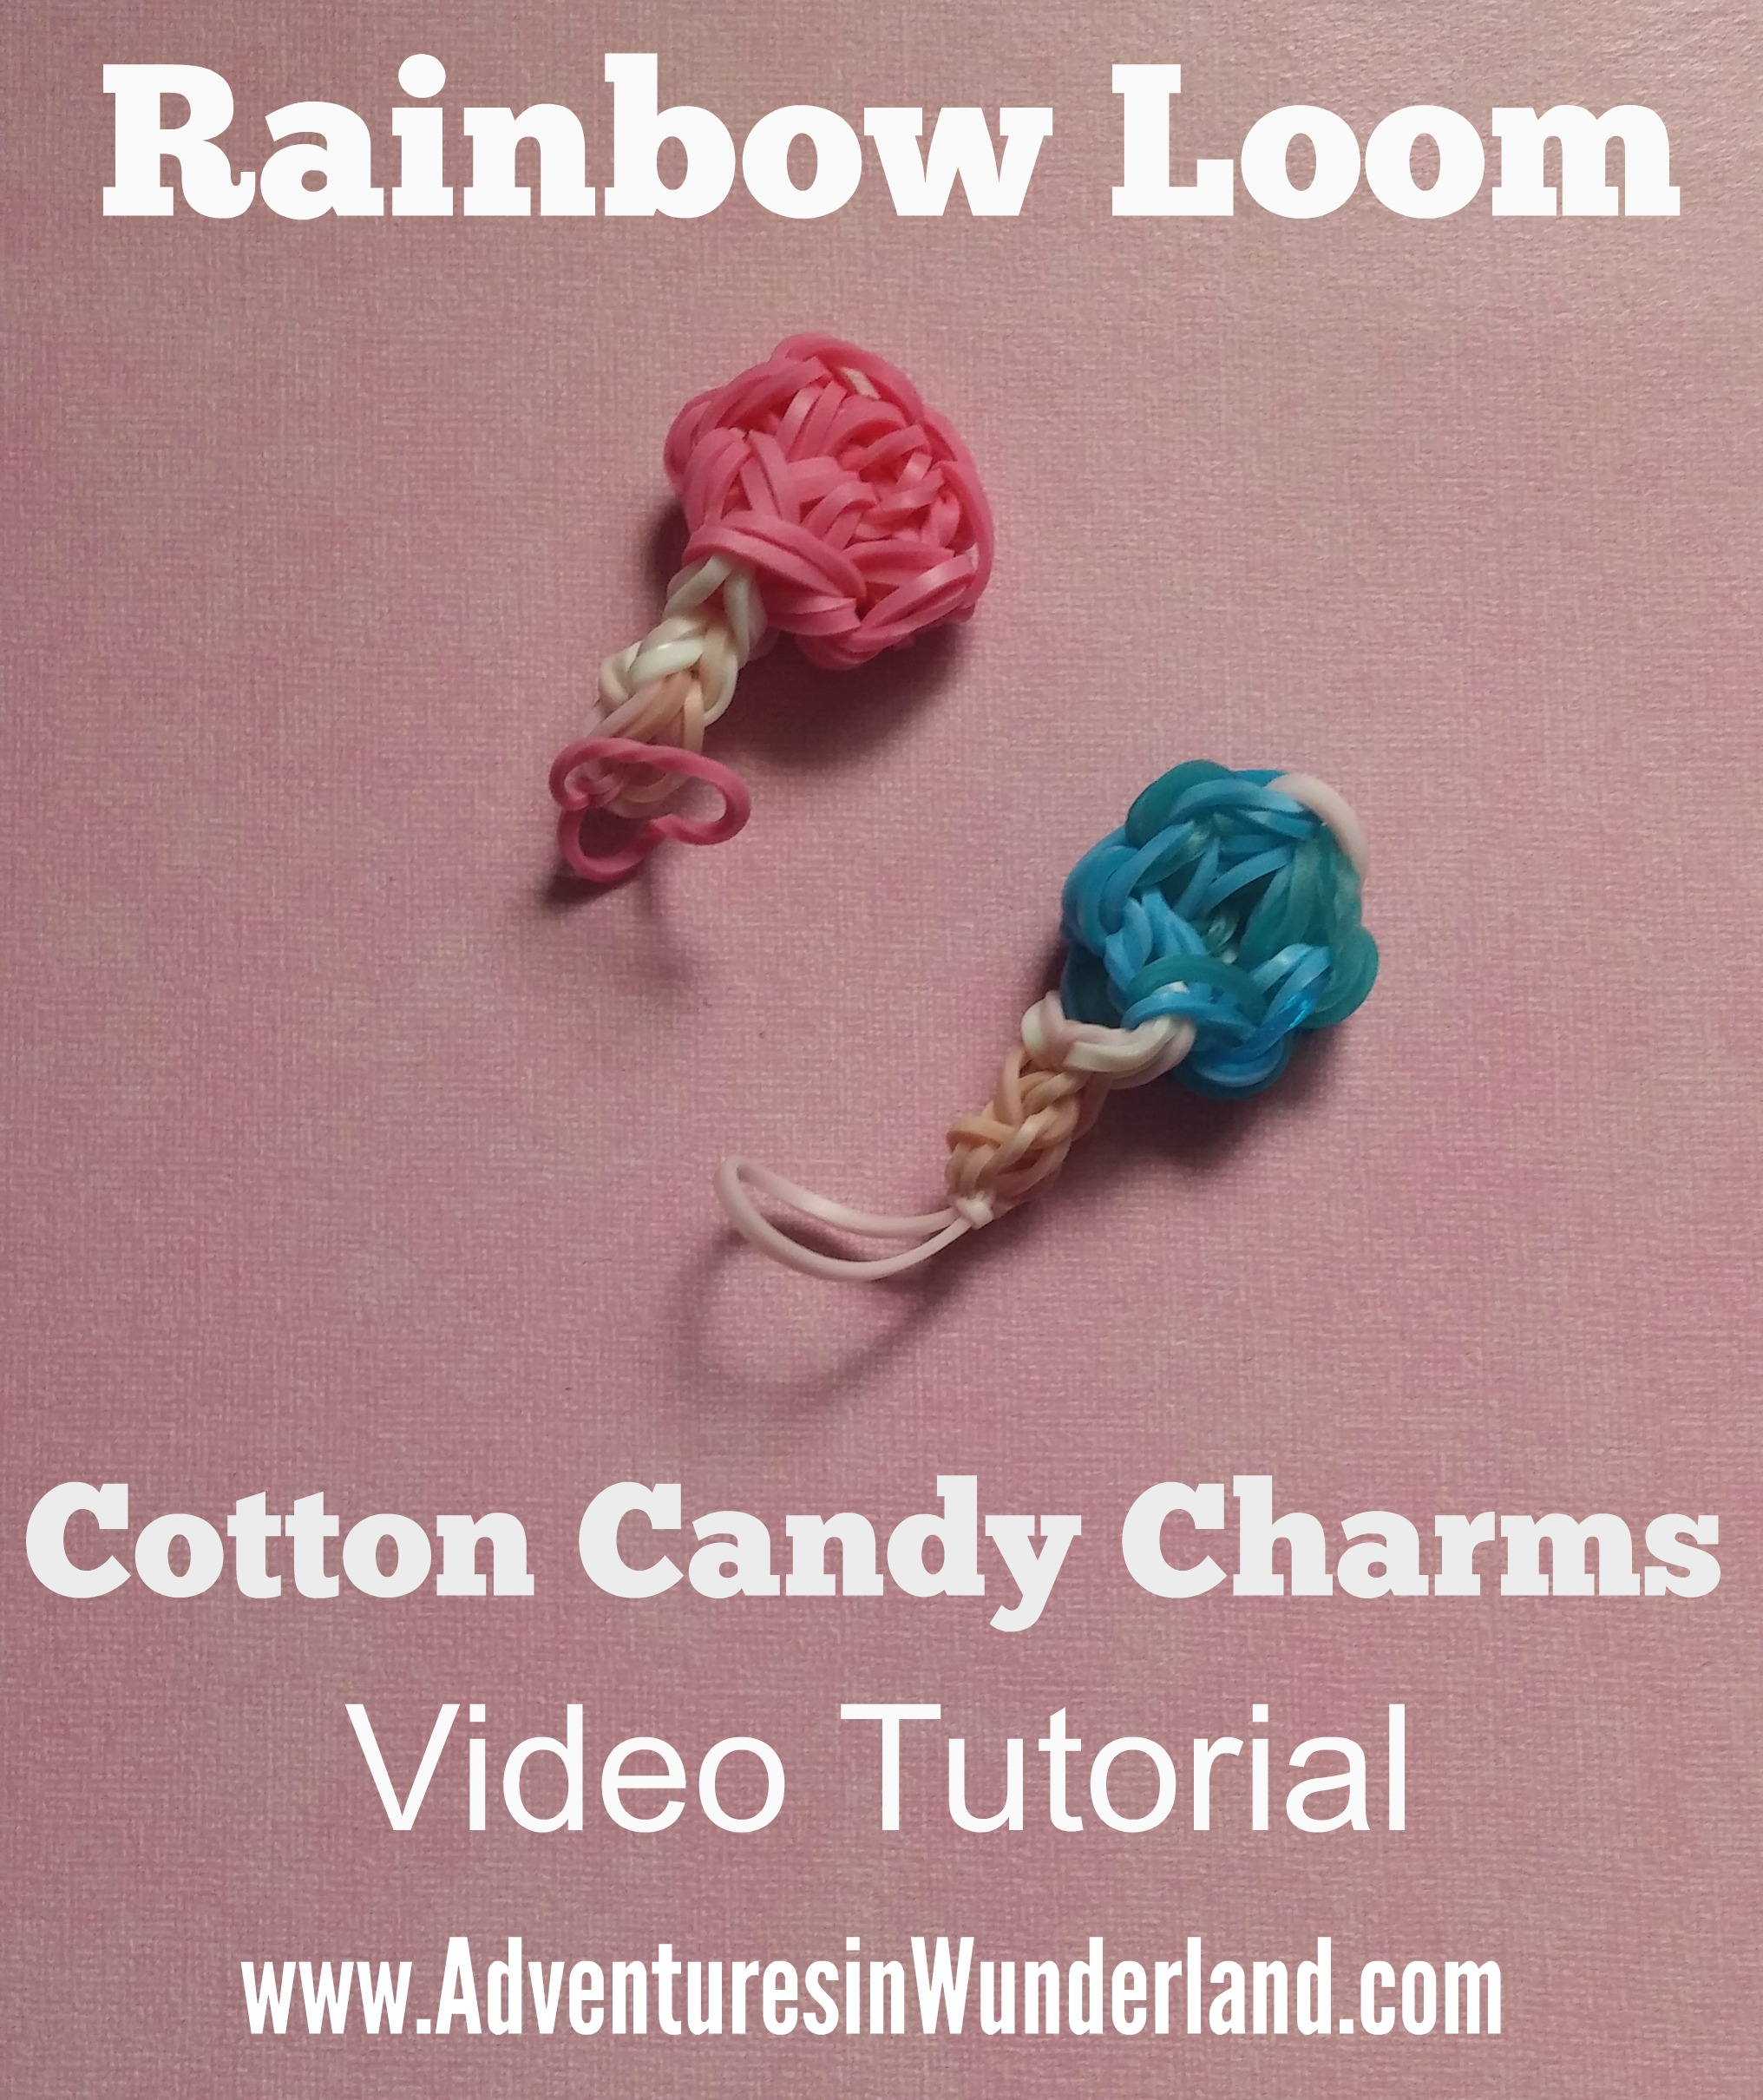 Rainbow Loom:  How to Make a Cotton Candy Charm